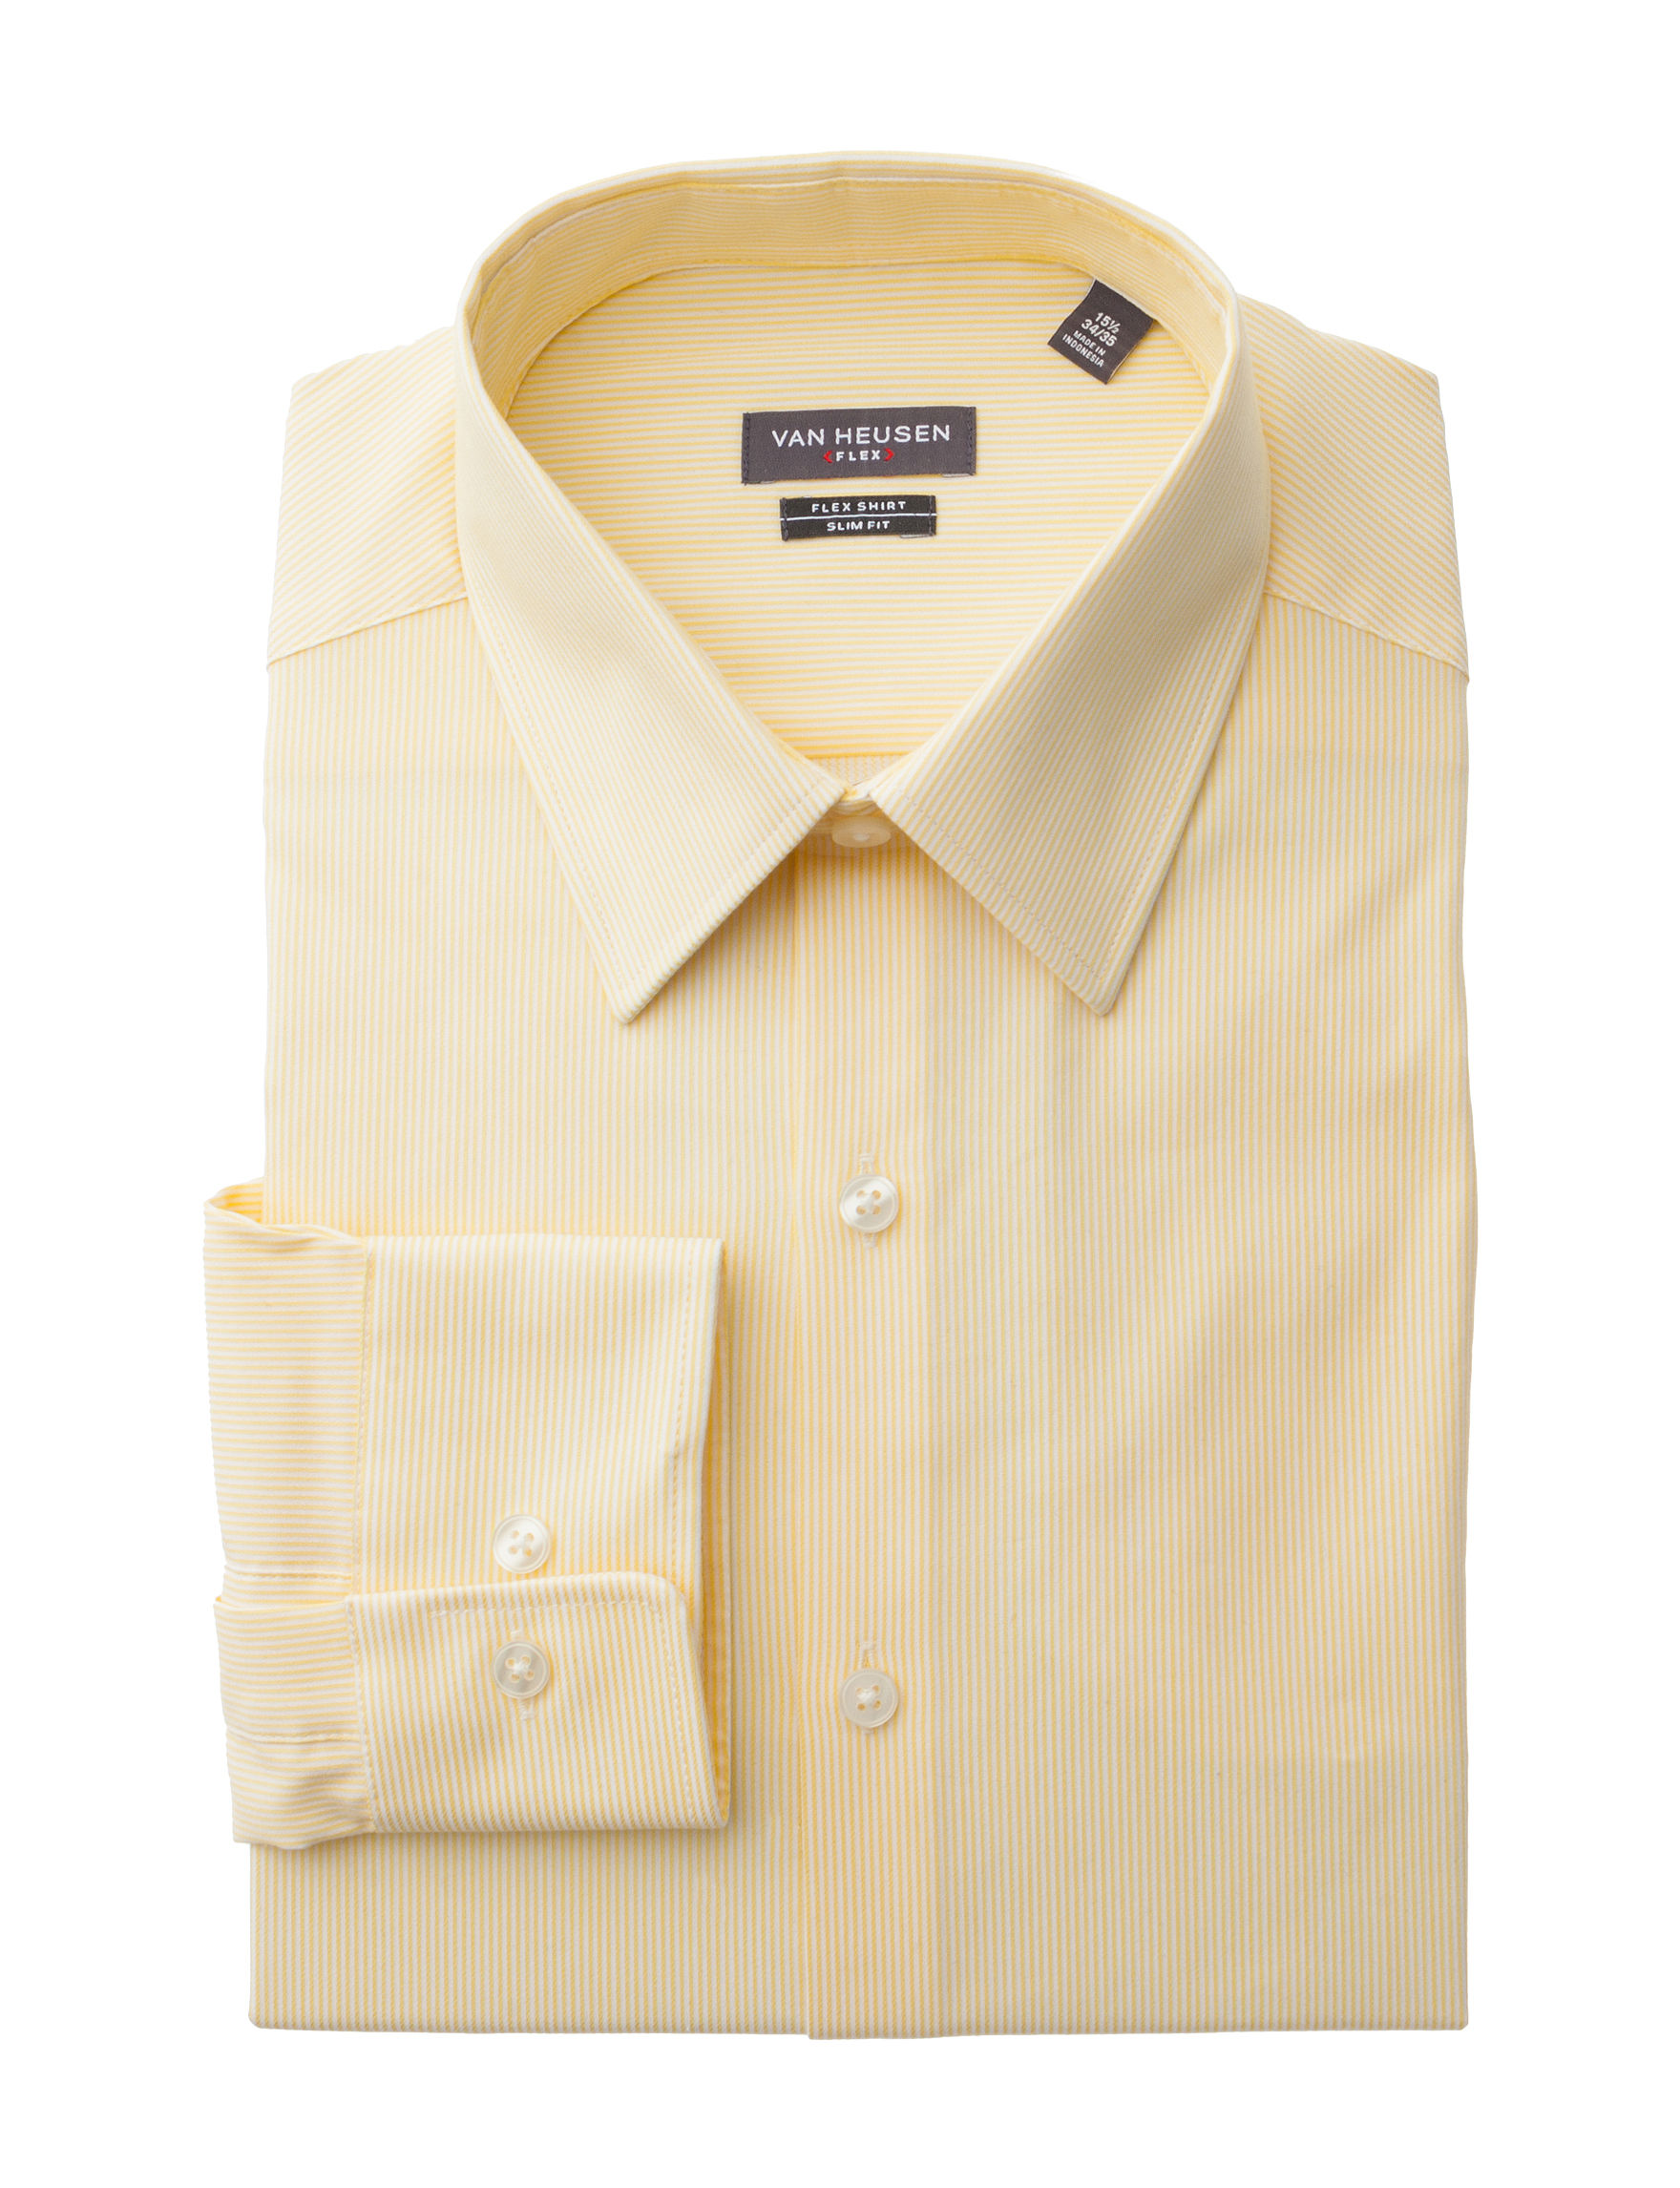 Van Heusen Mens Fitted Dress Shirts Bcd Tofu House